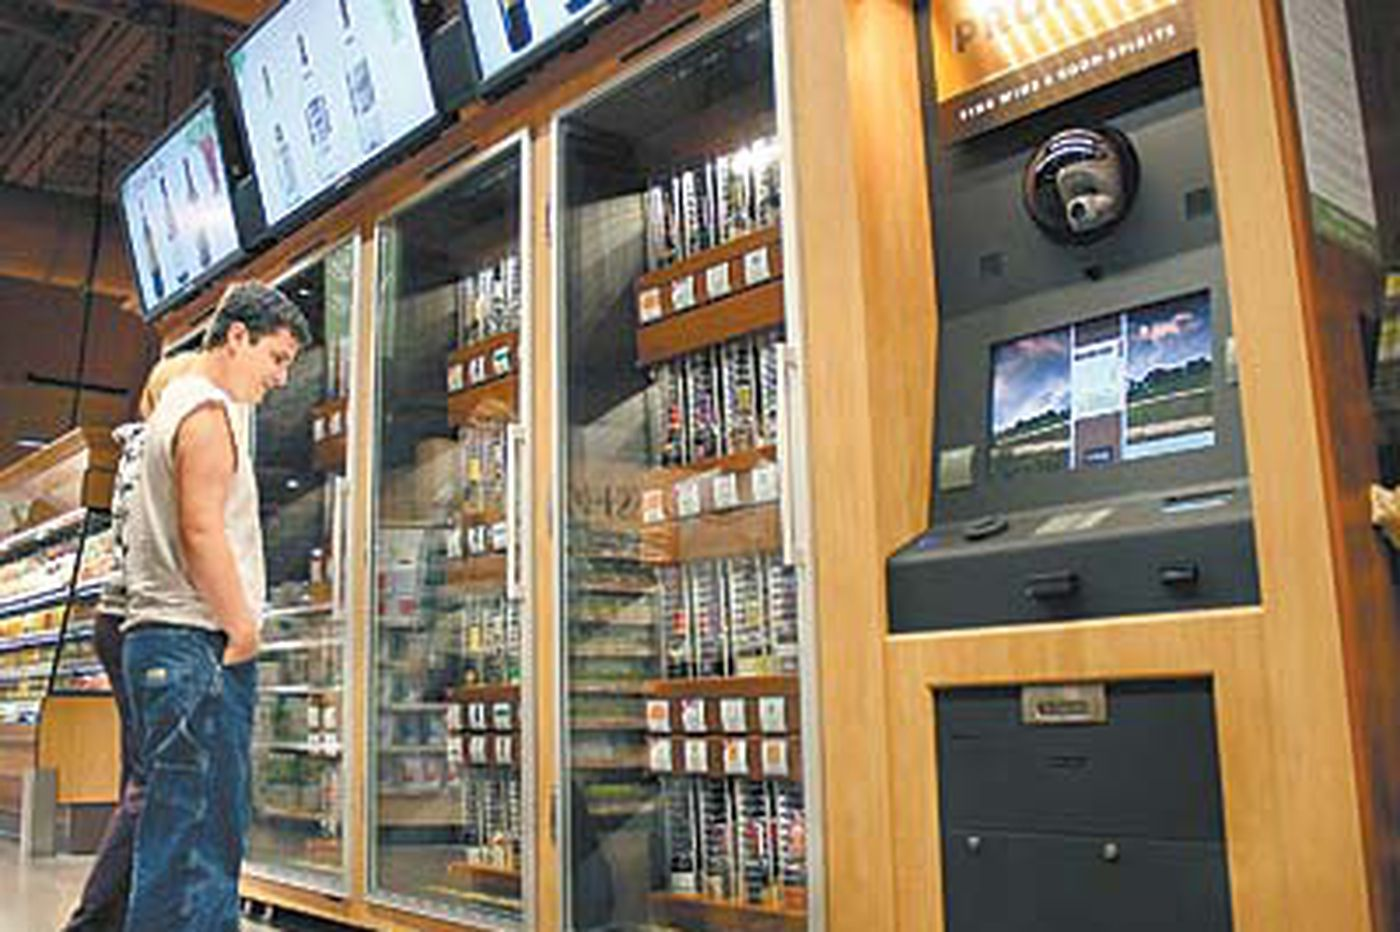 Audit: Wine kiosks cost taxpayers $1 million